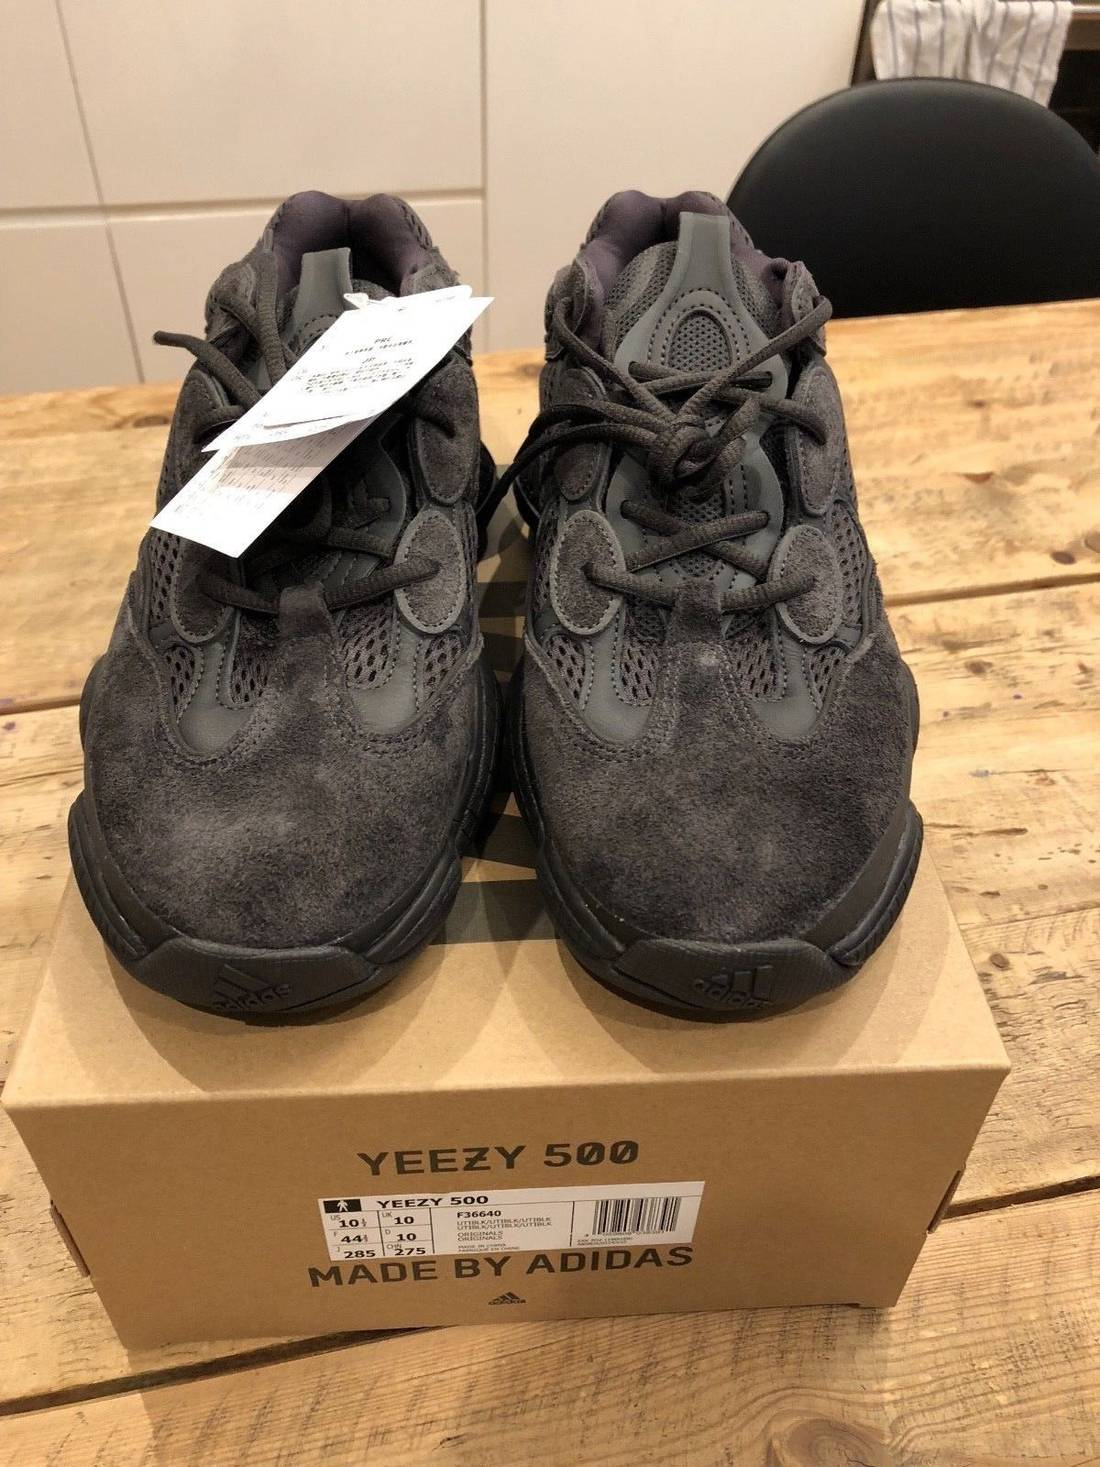 Adidas Yeezy Boost 500 Utility Black Size 10 5 Low Top Sneakers